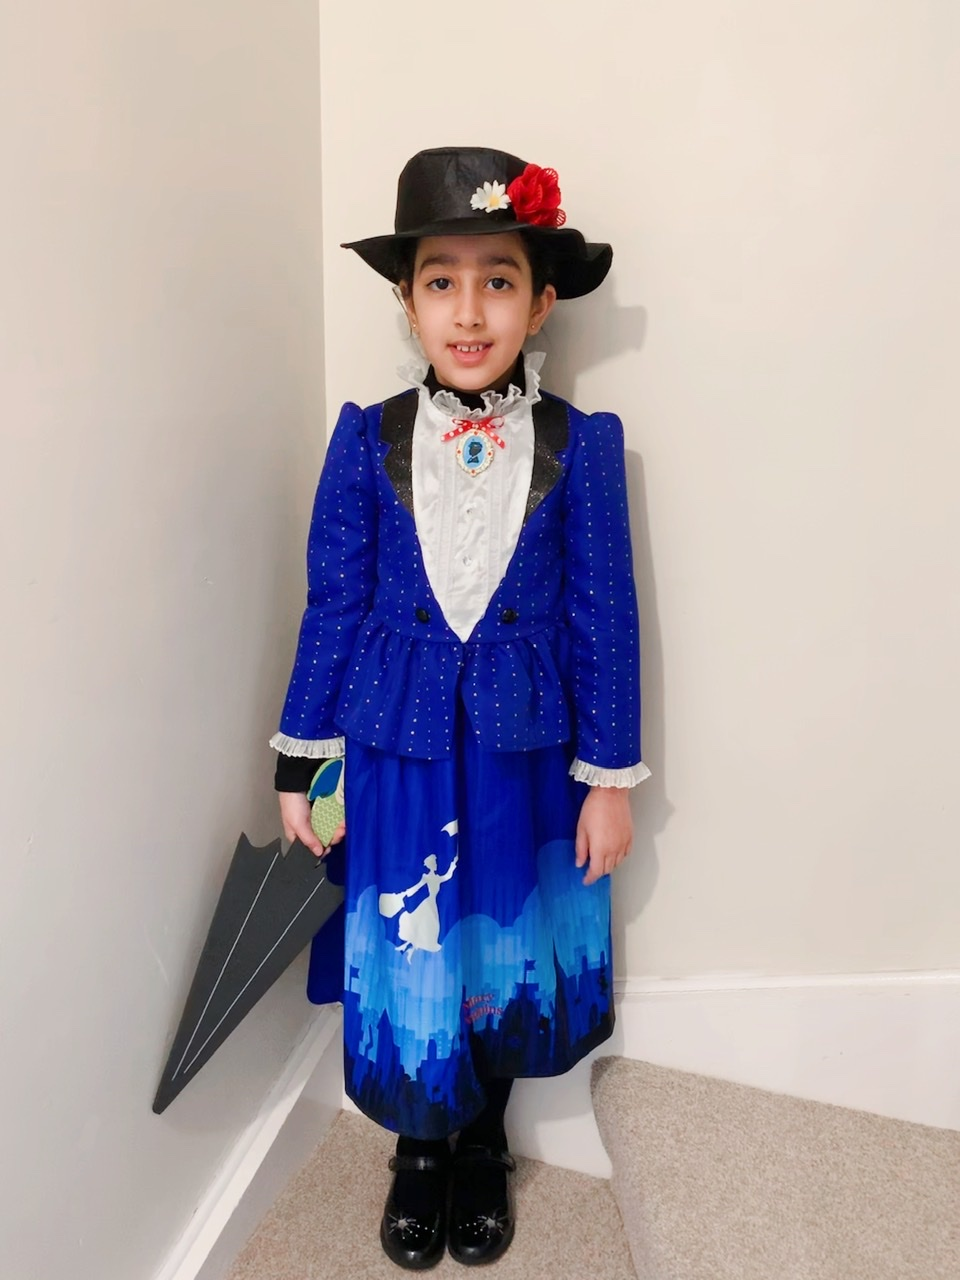 Droitwich Advertiser: Anaya Akbar, aged 9 as Mary Poppins